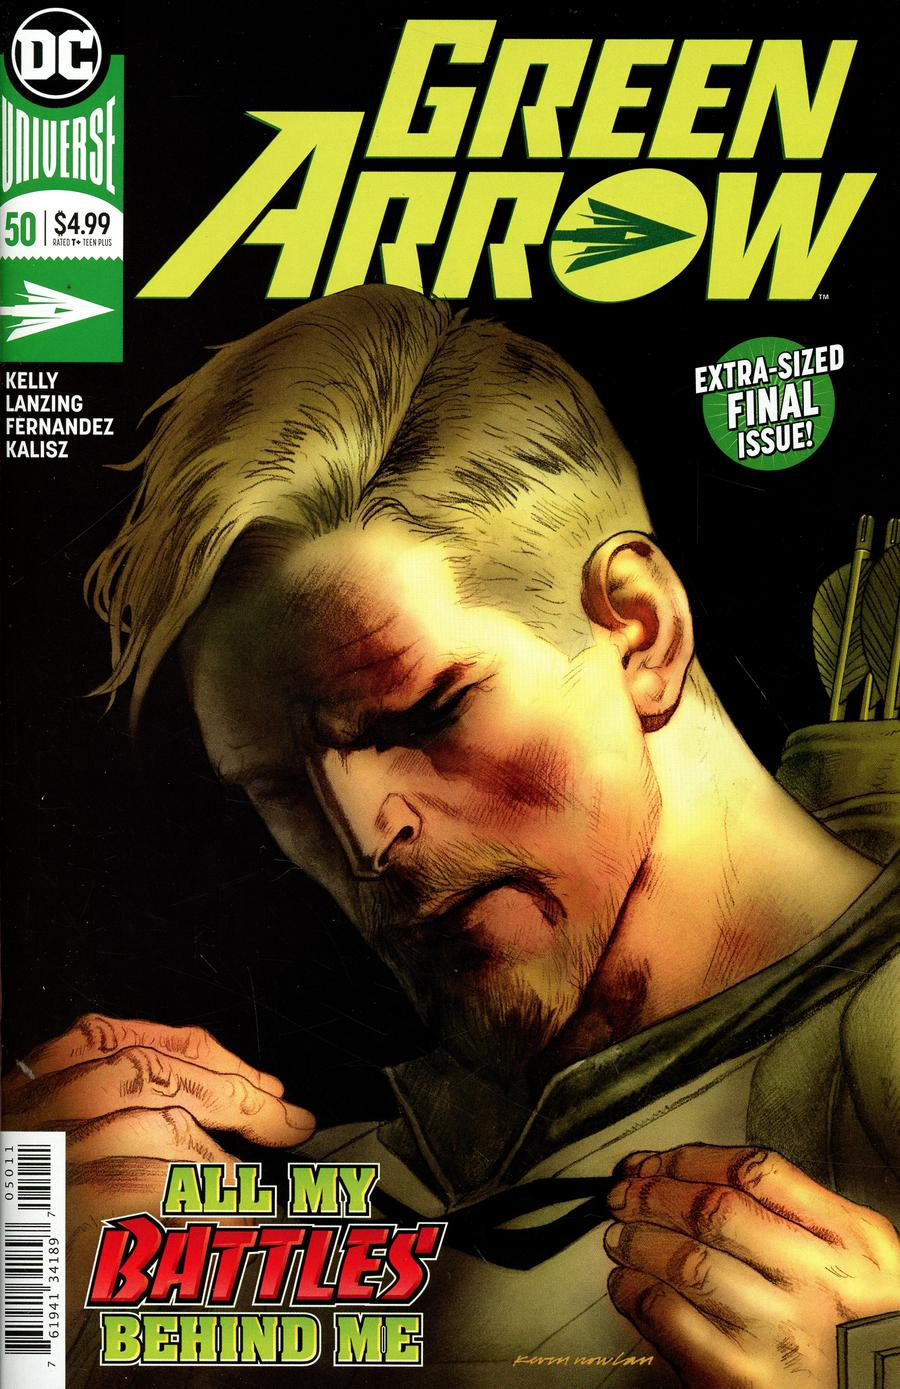 Green Arrow Vol 7 #50 Cover A Regular Kevin Nowlan Cover (Justice League No Justice Tie-In)(Heroes In Crisis Tie-In)